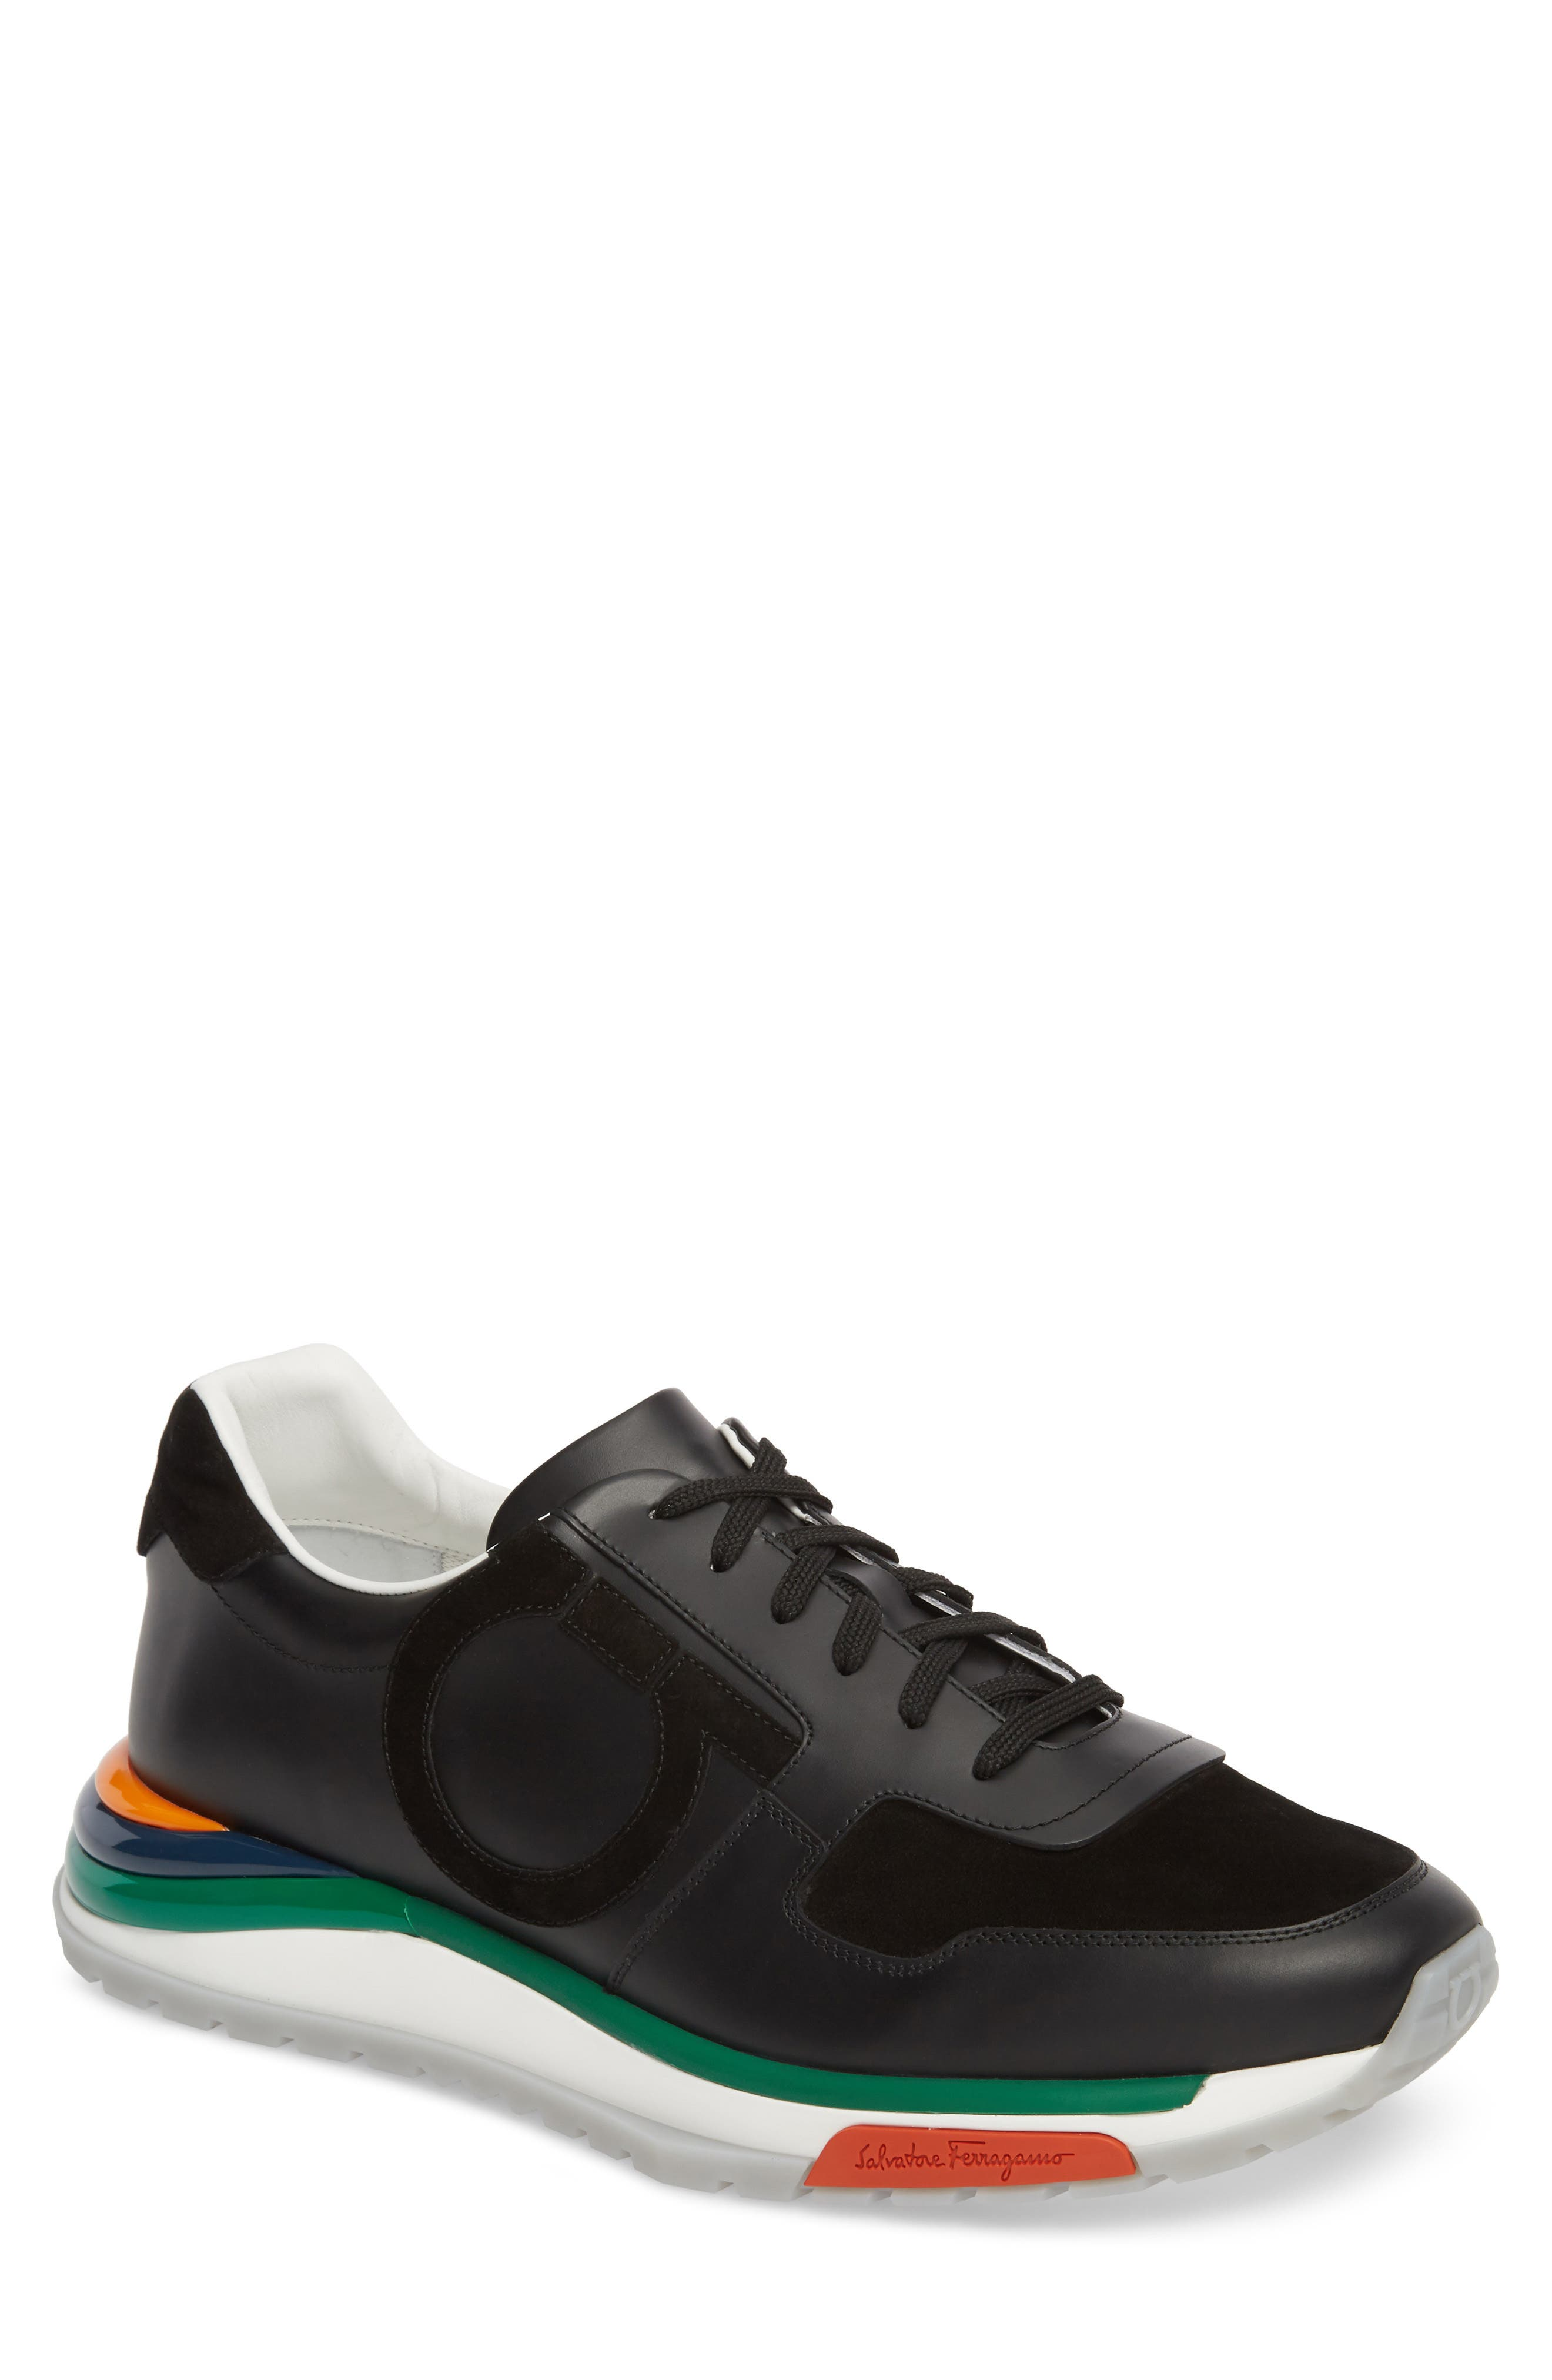 Brooklyn Running Shoe,                             Main thumbnail 1, color,                             NERO LEATHER